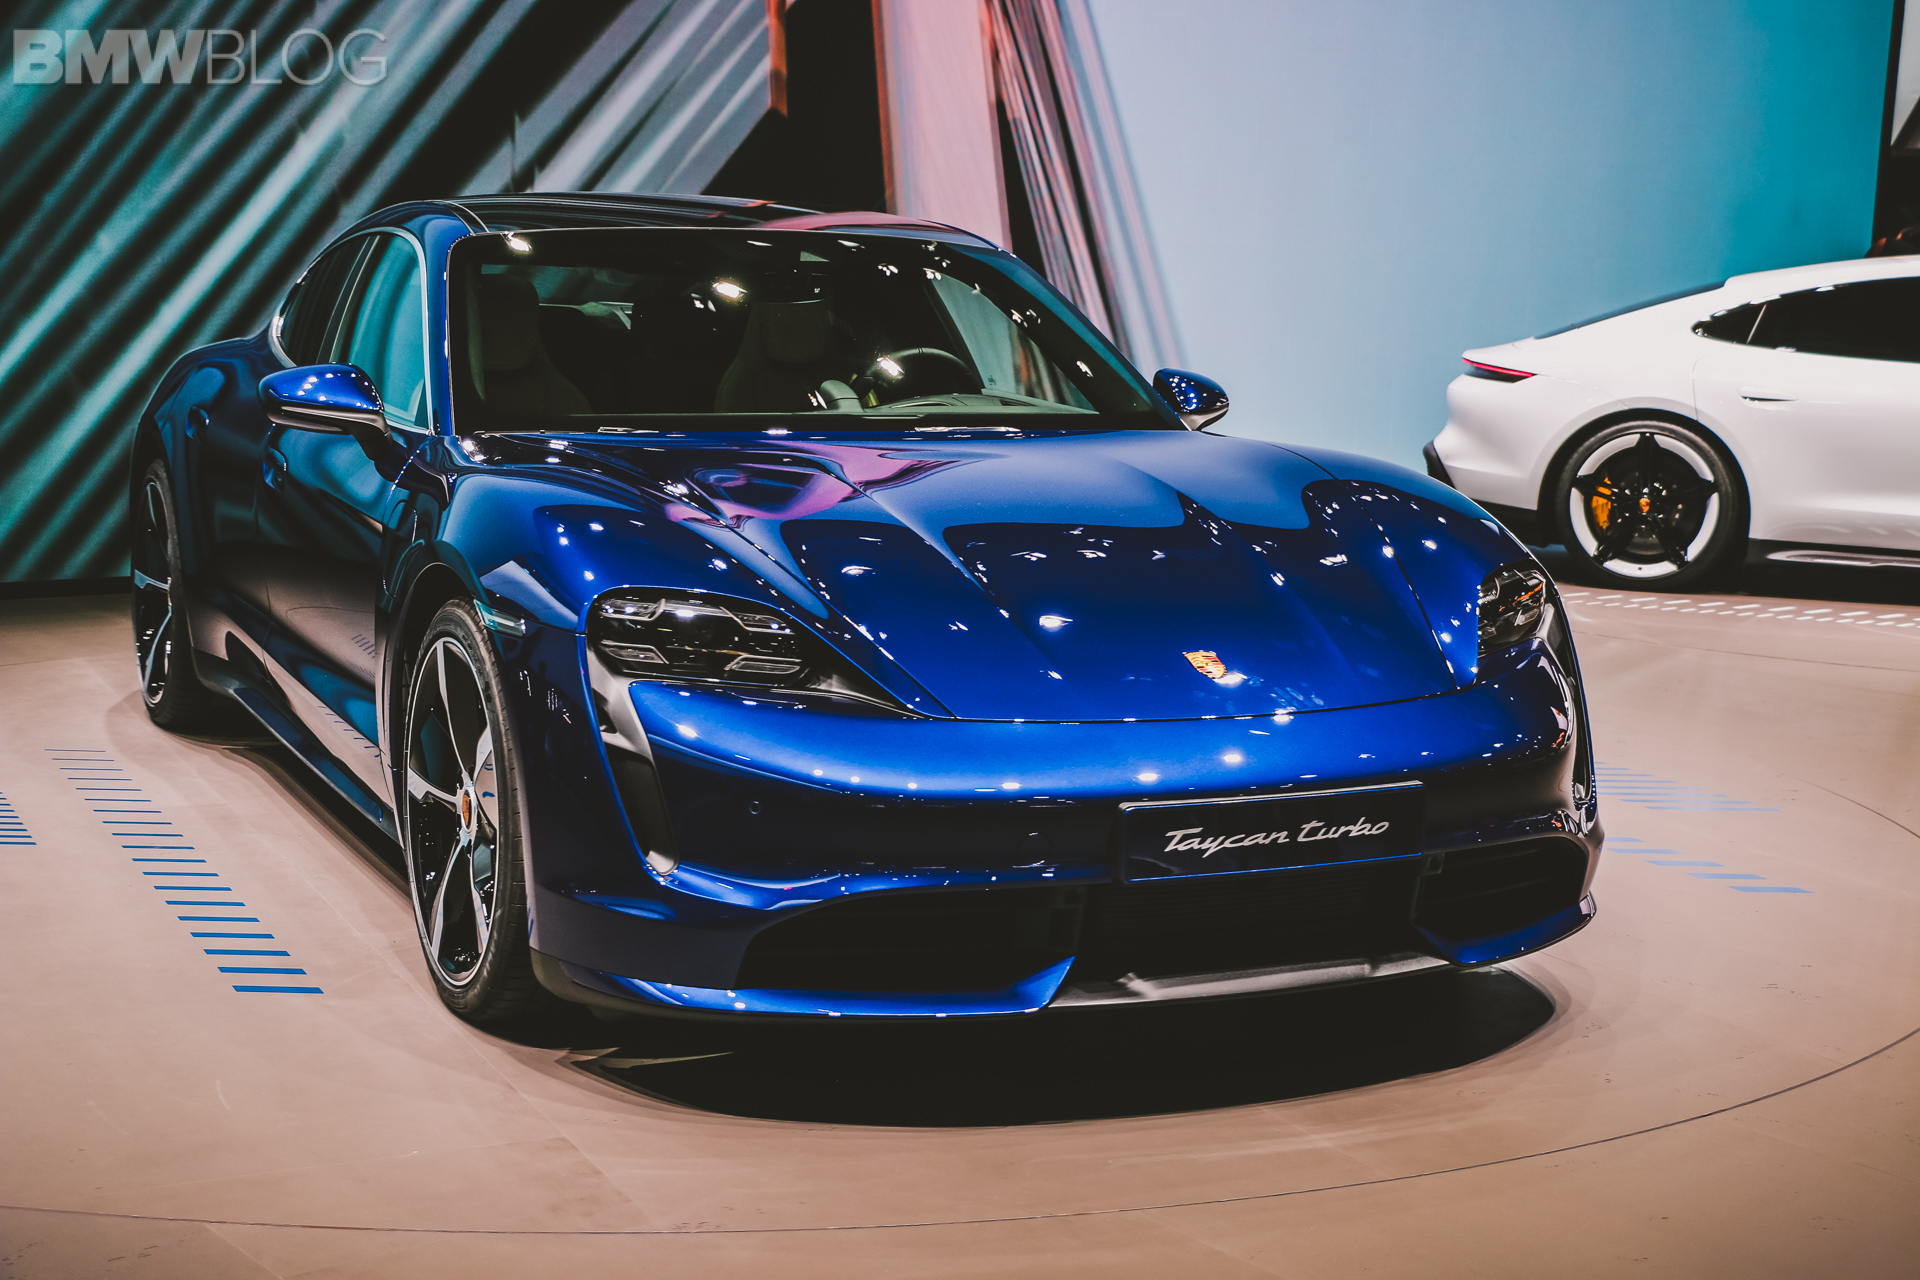 Porsche Taycan — Live Photos from the 2019 IAA